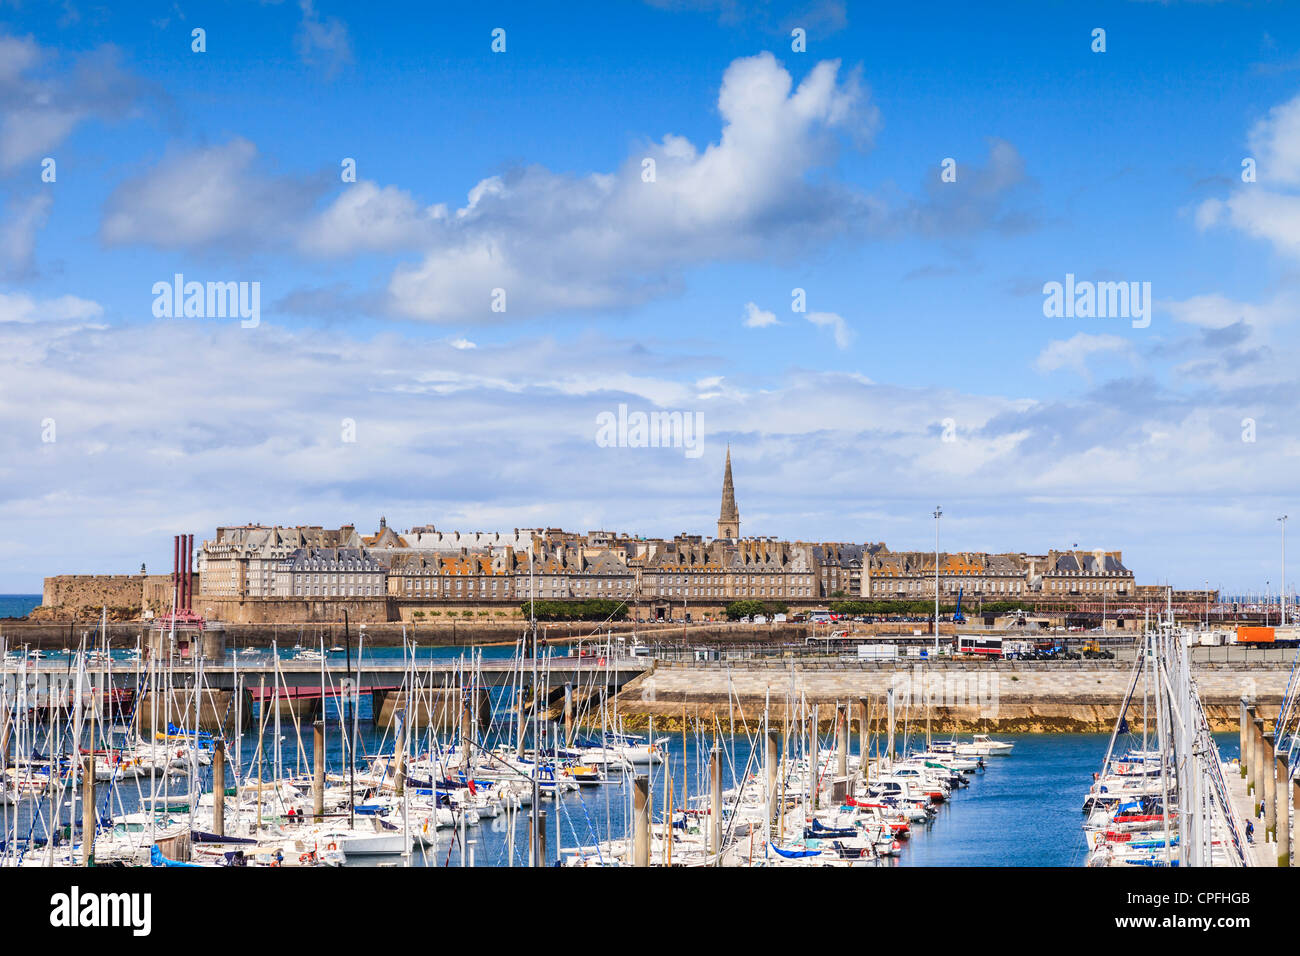 Looking over the marina to St Malo - Stock Image